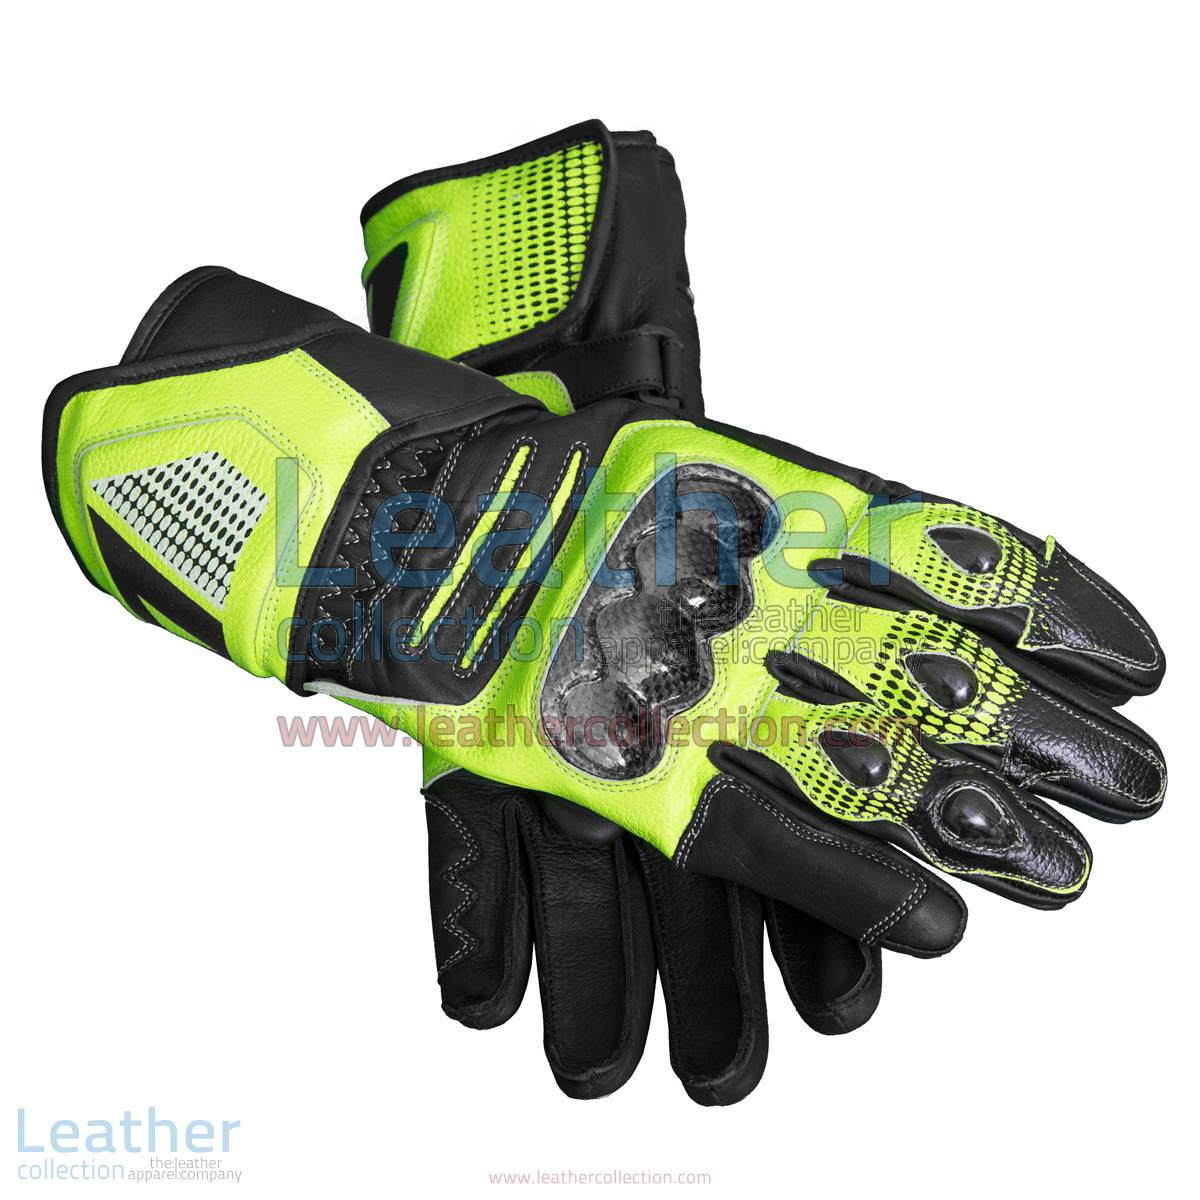 Valentino Rossi Motorcycle Race Gloves | Motorcycle race gloves